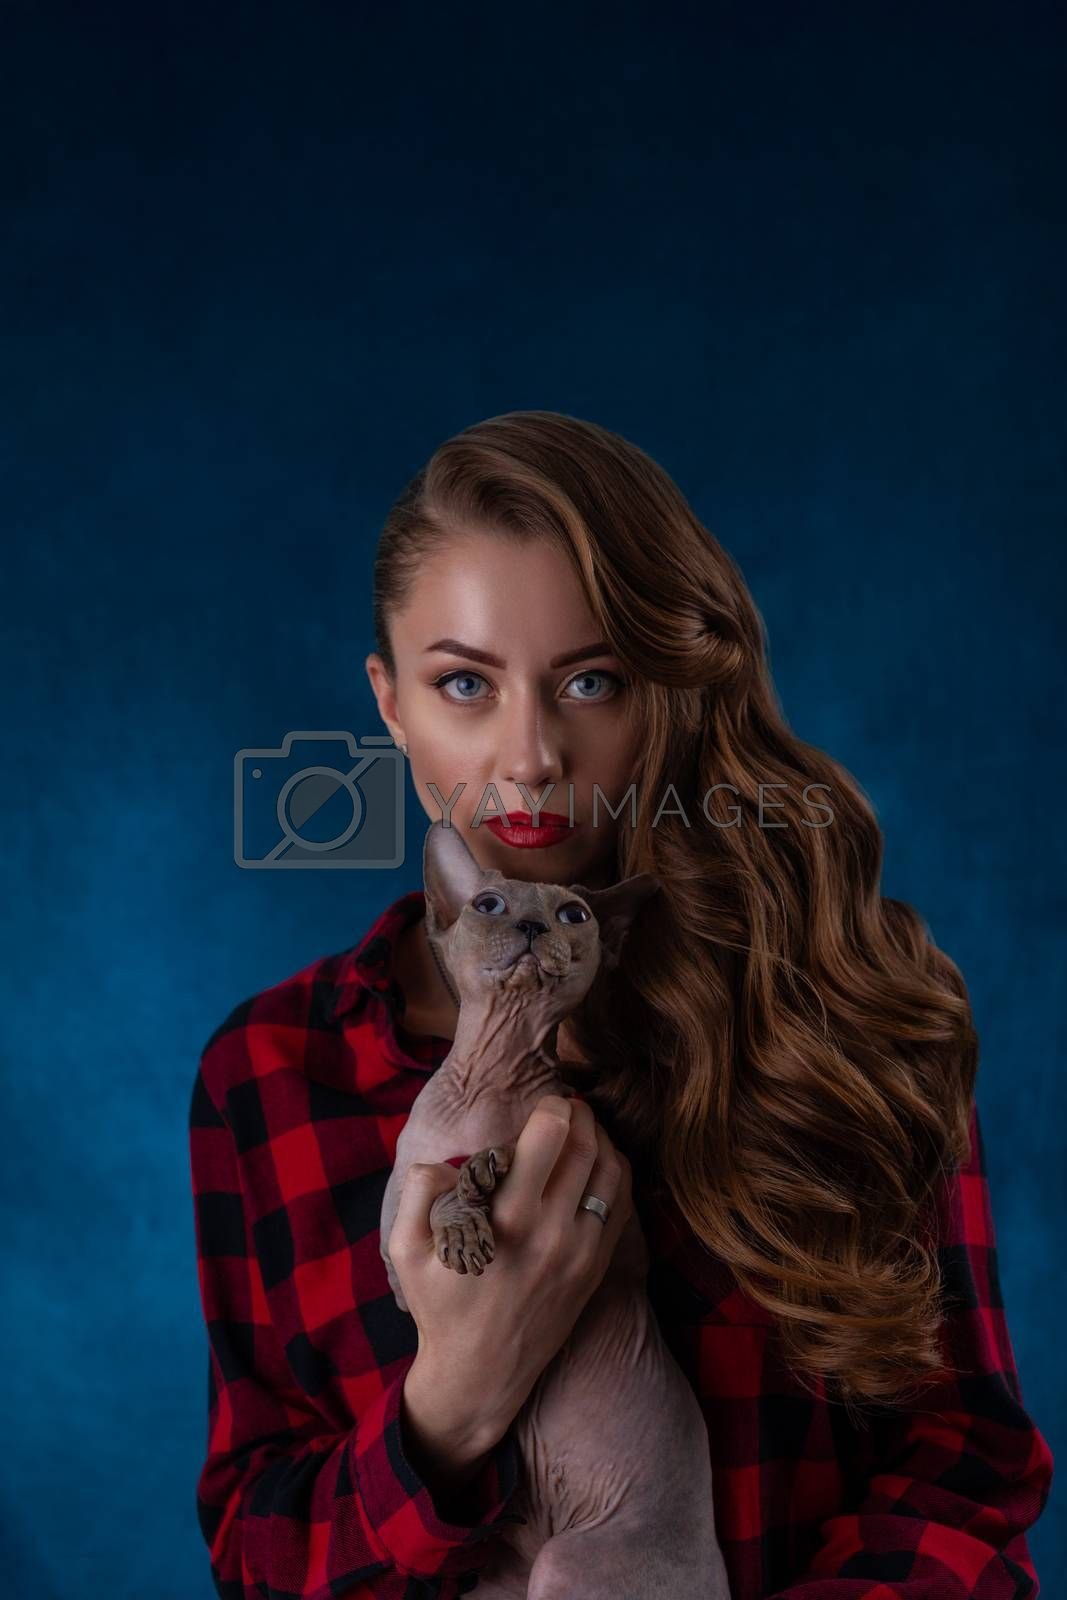 Fashion photo of pretty sexual girl with sphynx cat on hands. Sphynx cat with beautiful woman on  blue background.